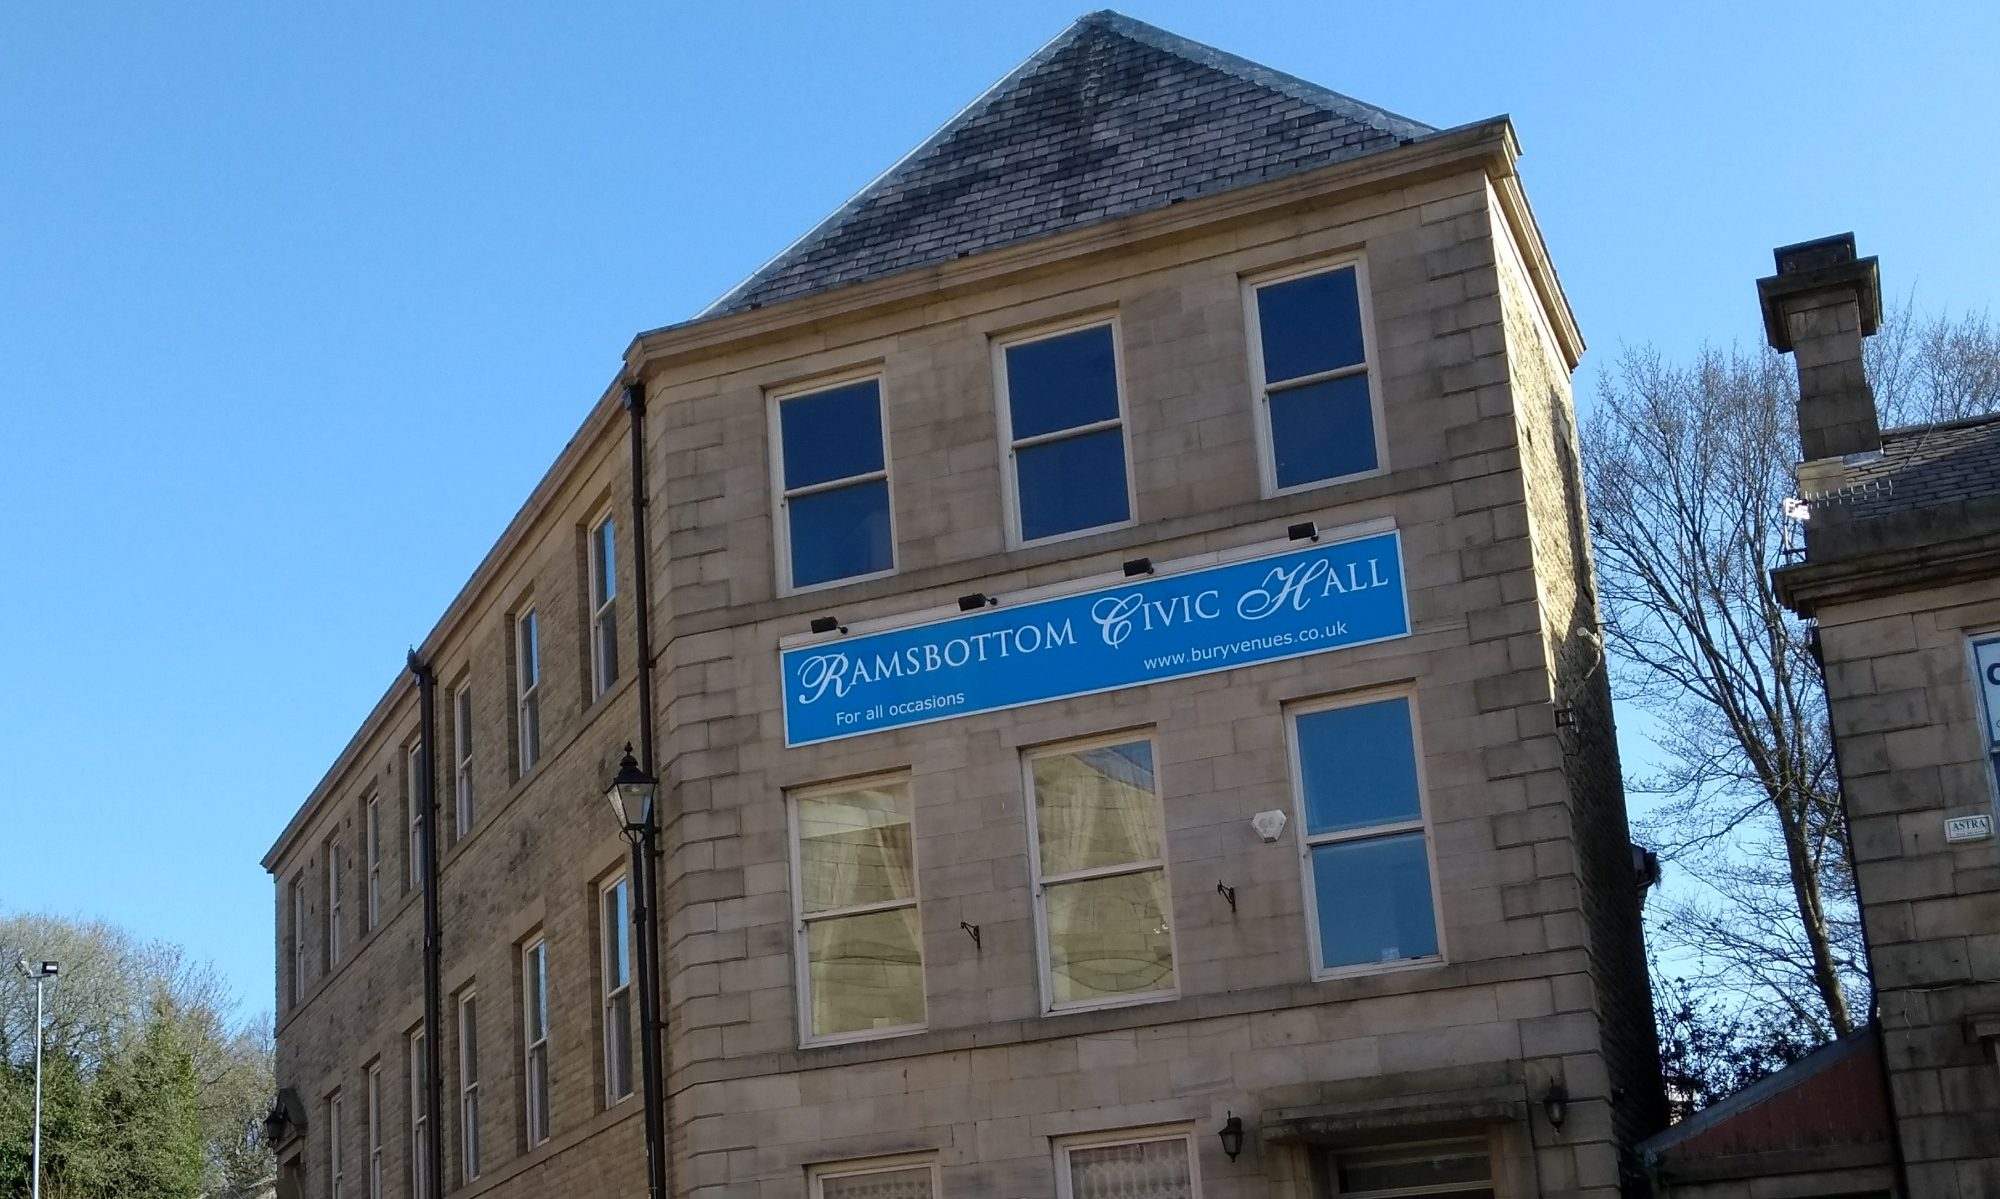 Friends of Ramsbottom Civic Hall